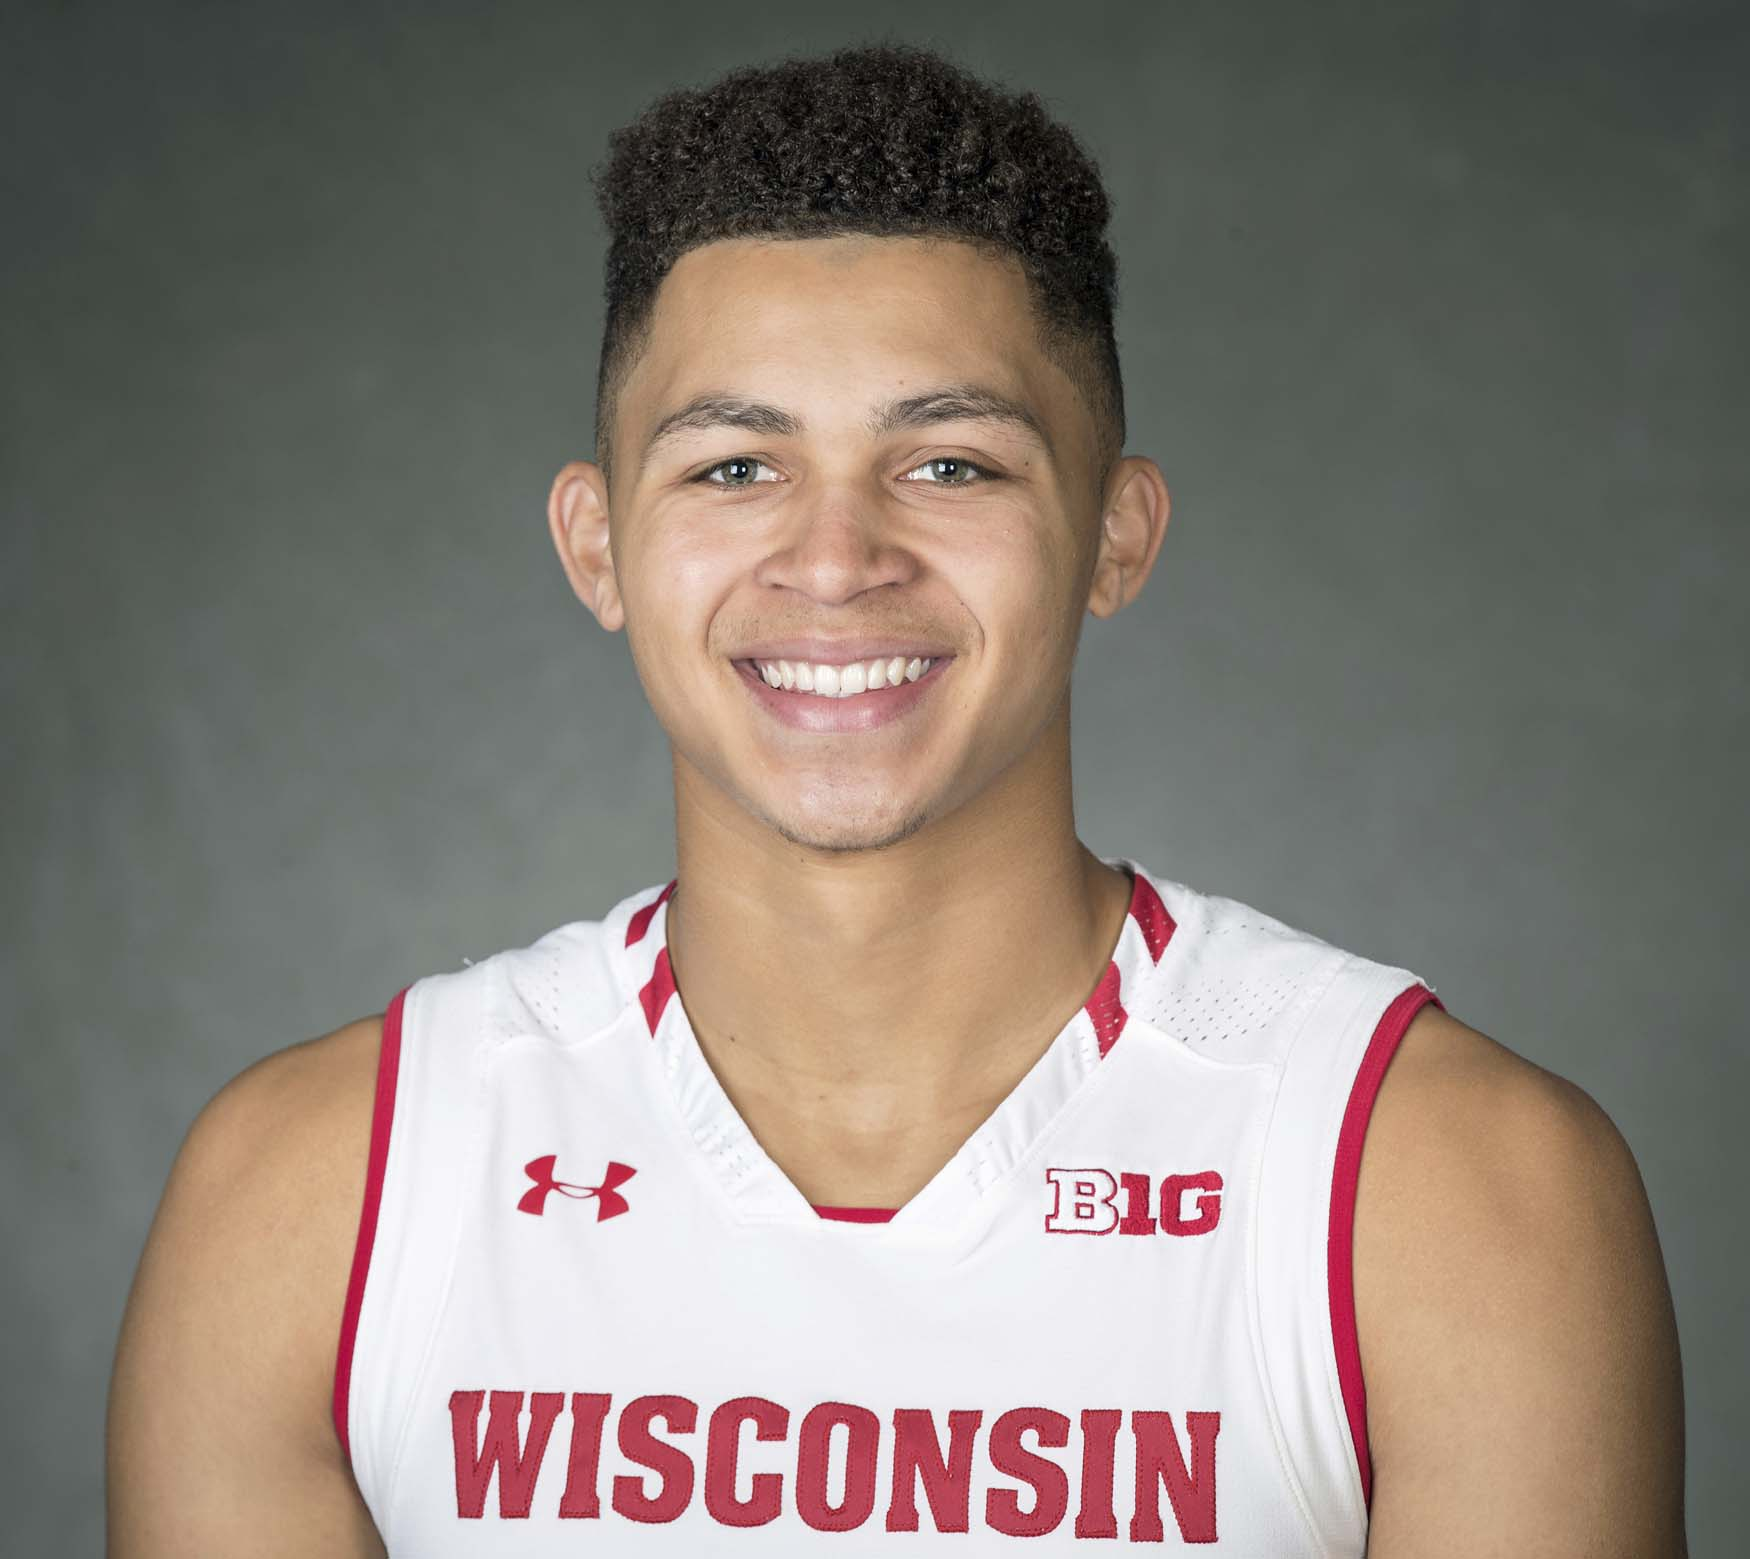 Wisconsin men's basketball: Wisconsin takes care of UNI in scrimmage